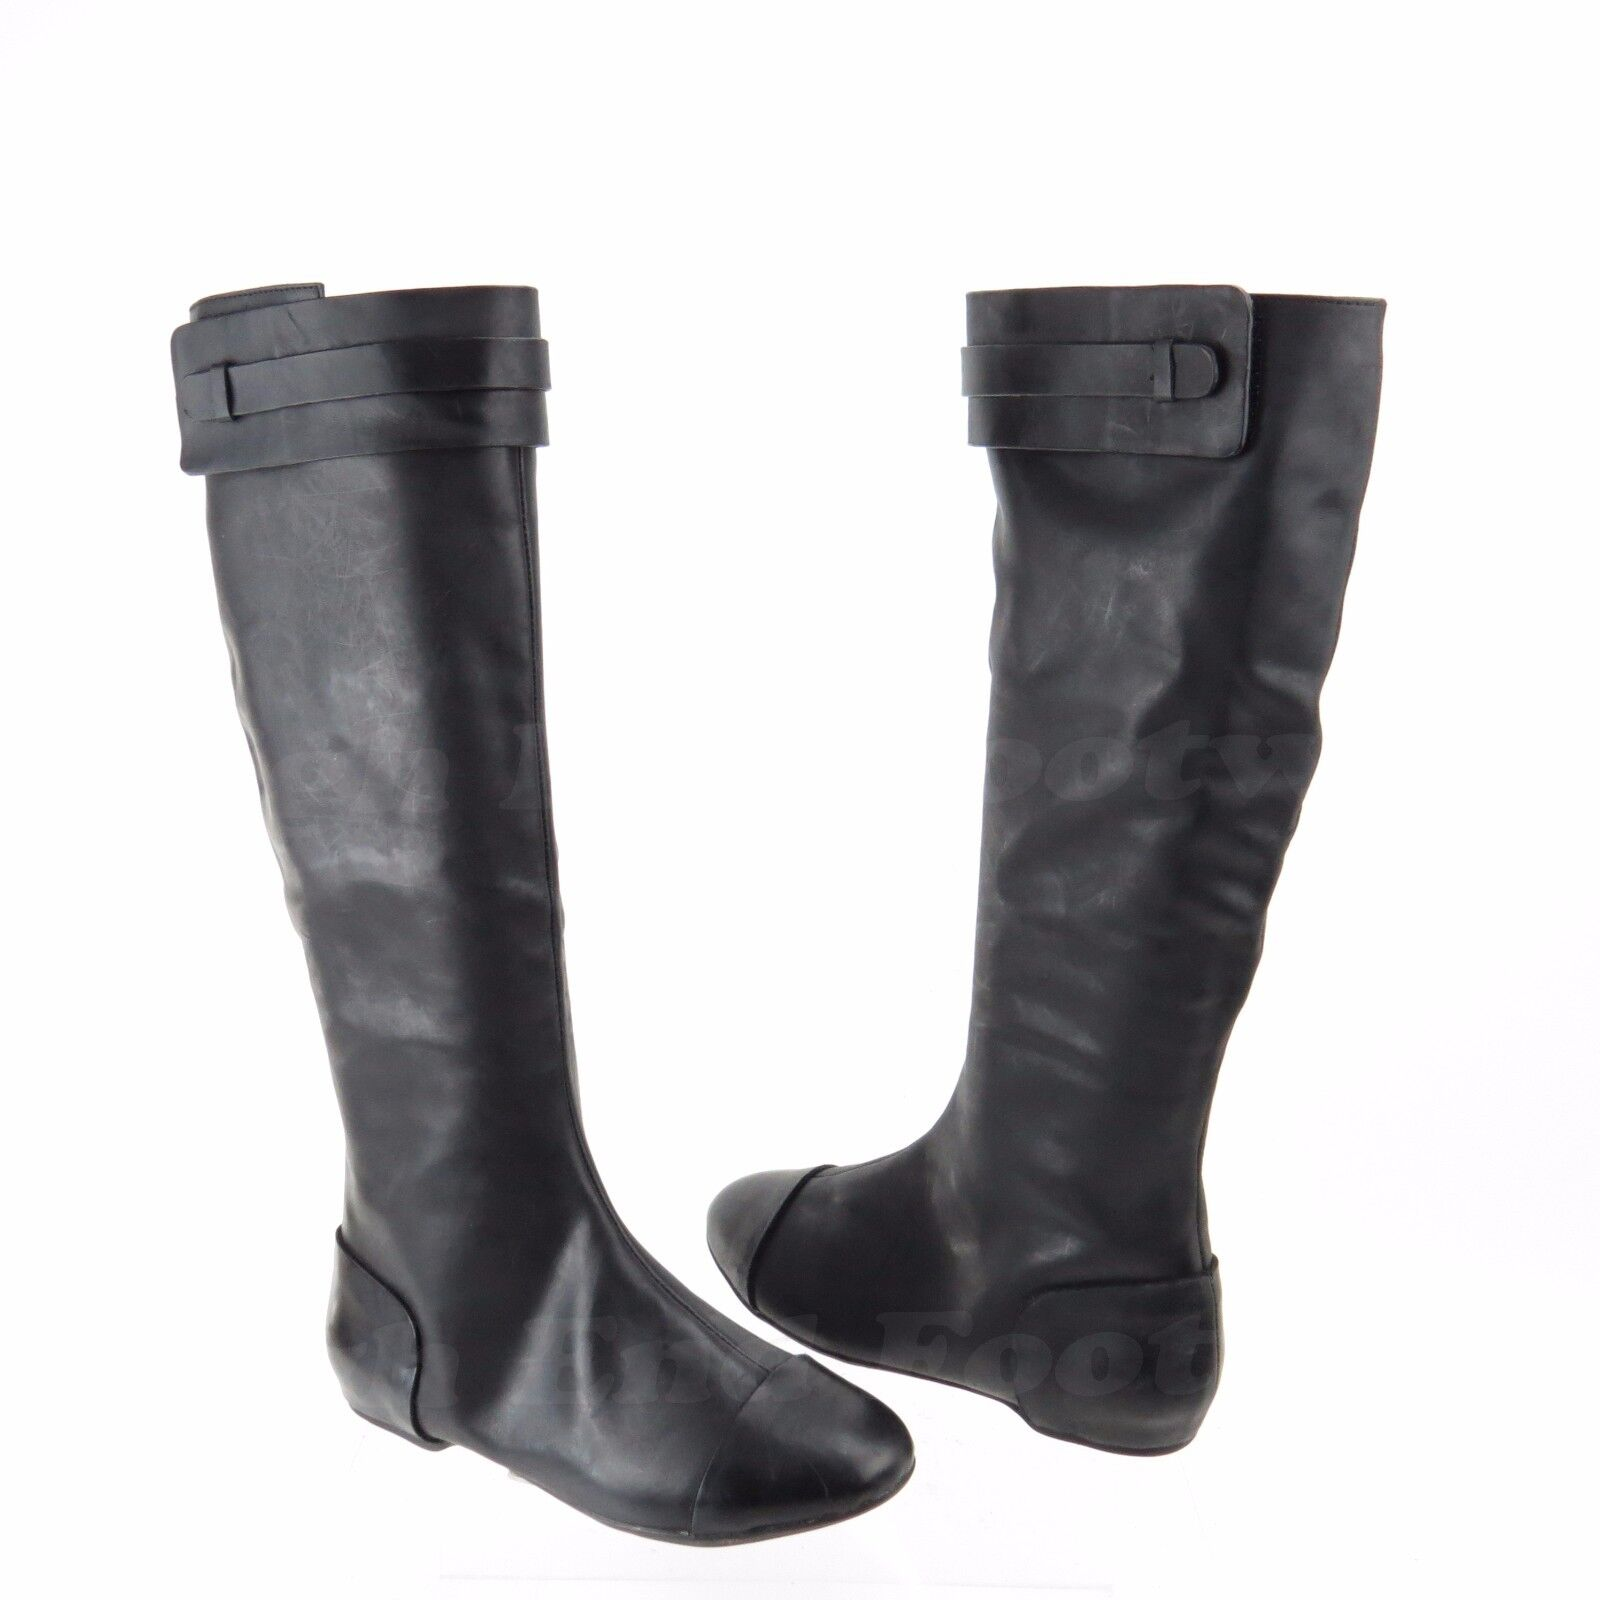 Max Studio Draping Women's shoes Black Leather Tall Boots Boots Boots Sz 6.5 M NEW RTL  378 f7b82f